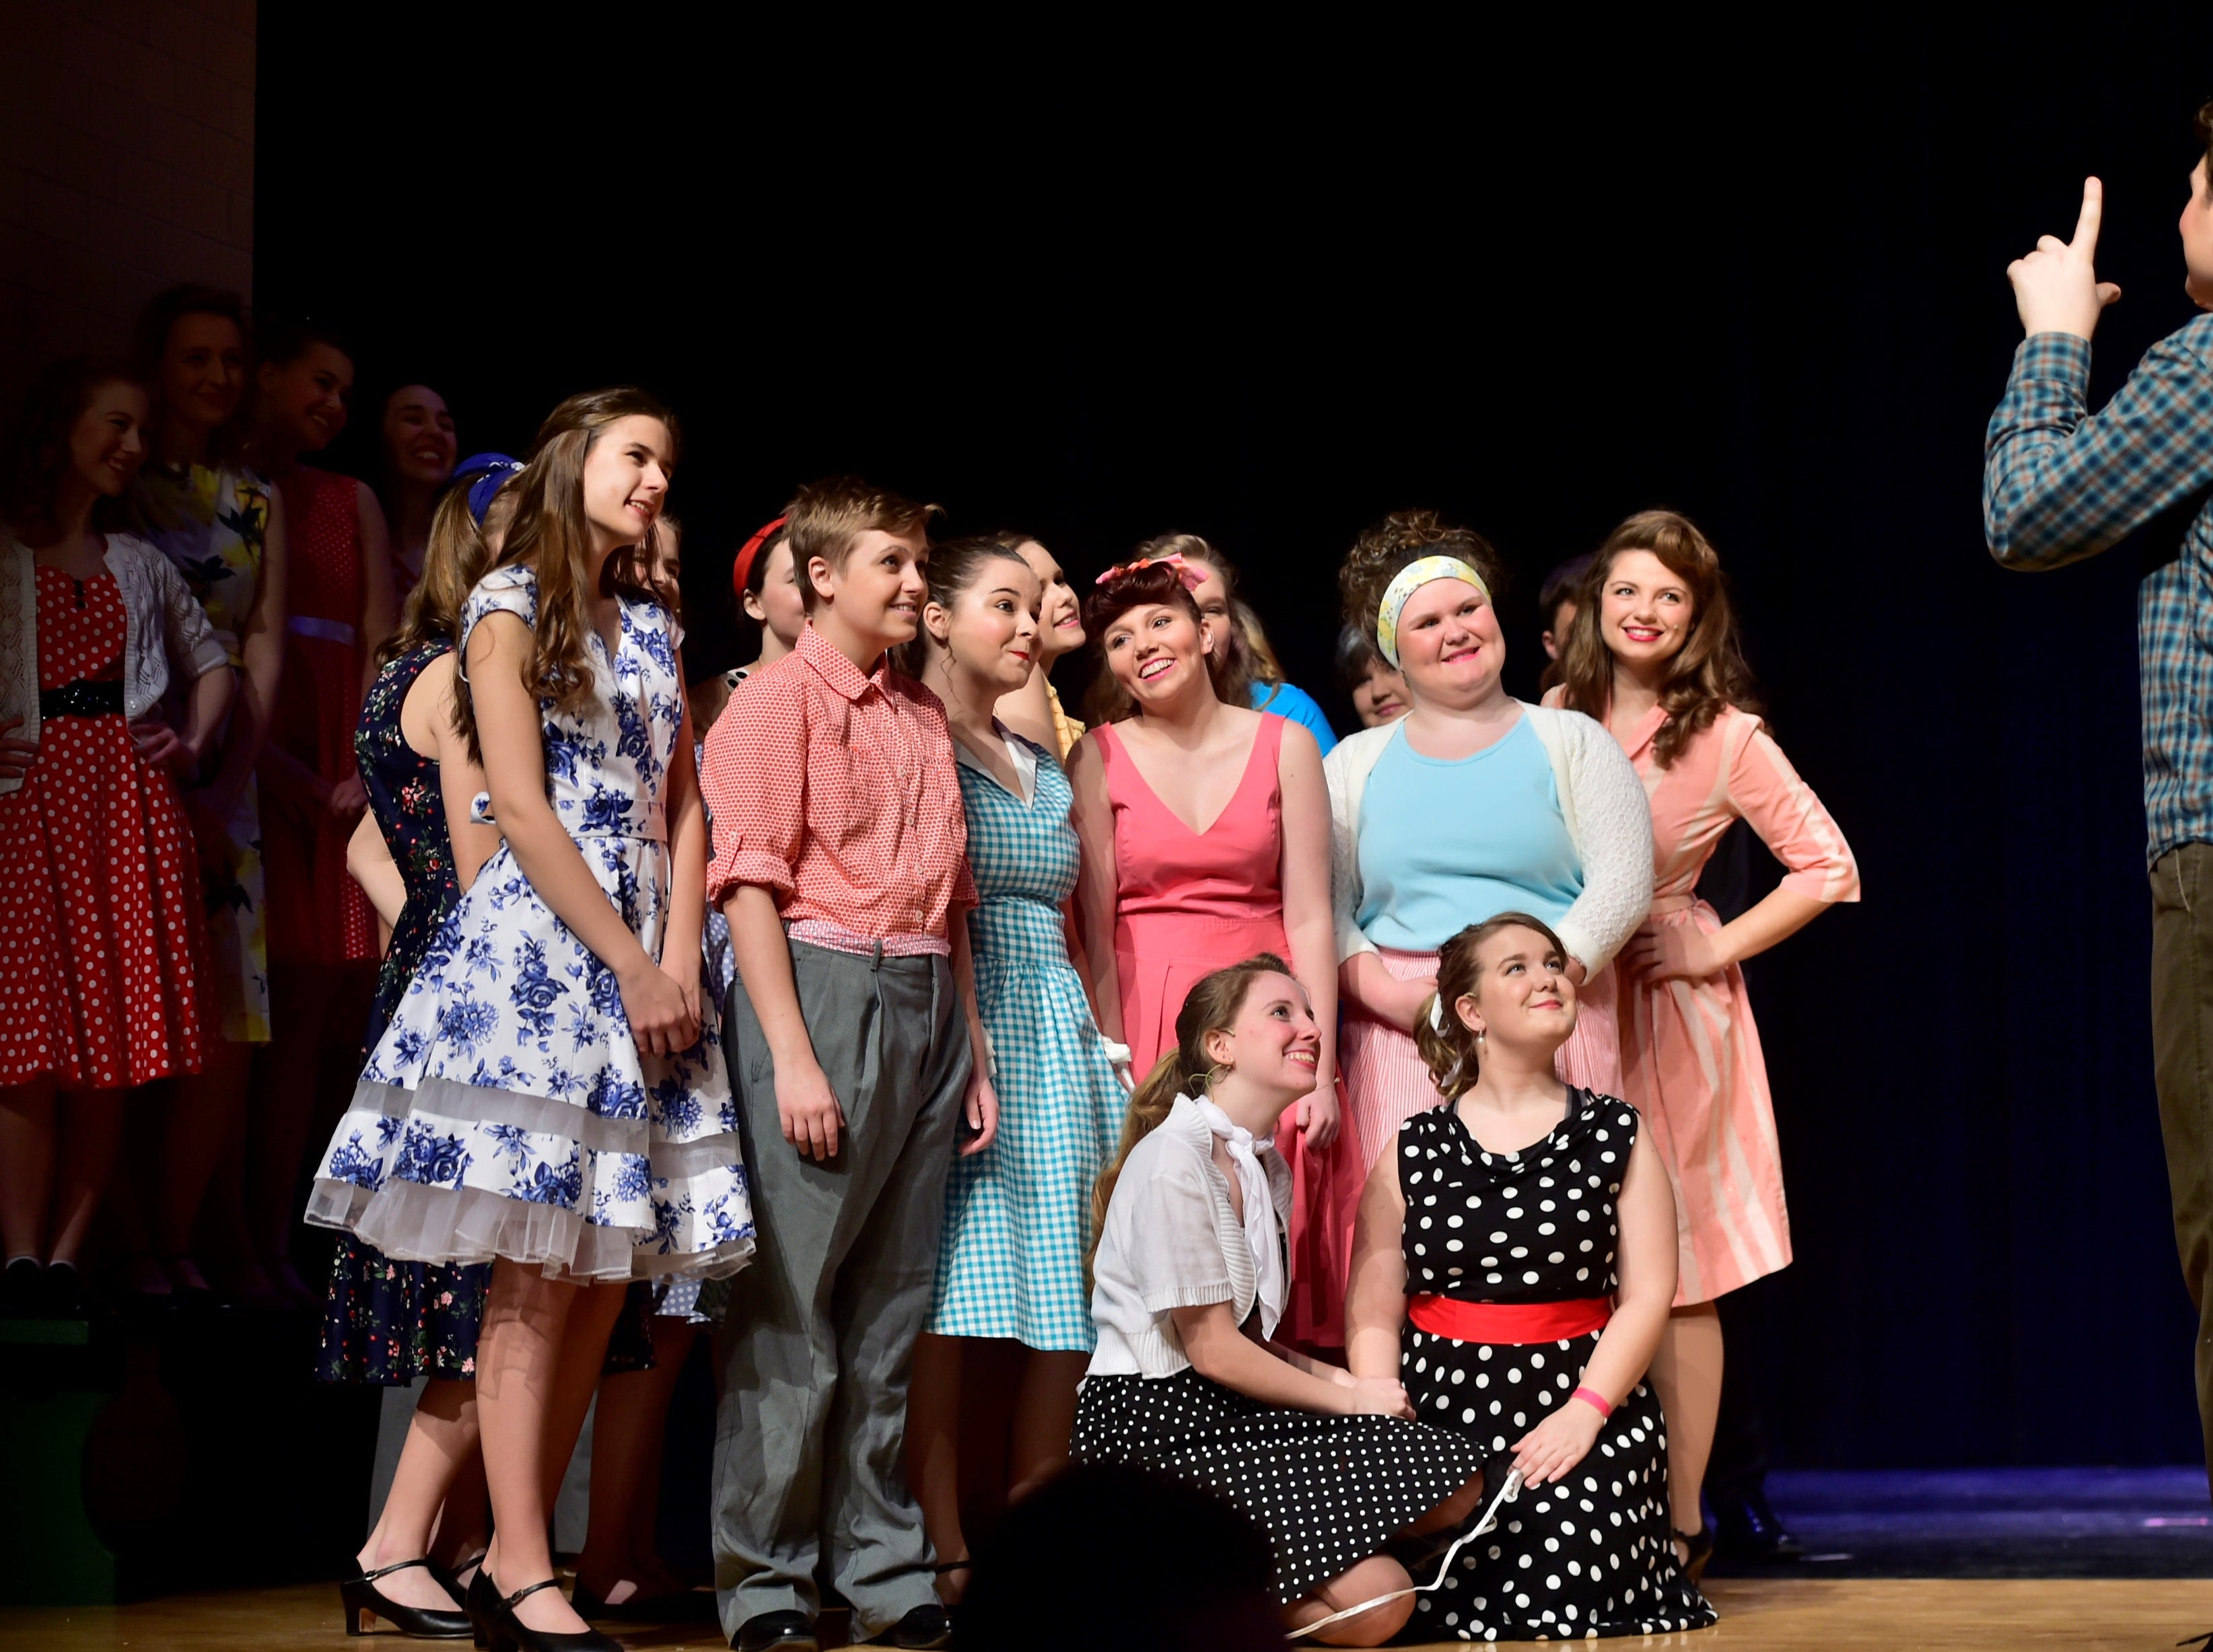 """Cast members pose while a fellow character takes a photo of the group during a scene  from """"The Pajama Game,"""" on Sunday, March 10, 2019, at Waynesboro Area Senior High School. The musical, based on the 1953 novel, """"7 1/2 Cents"""" by Richard Bissell, tells the story of a pajama factory where workers are fighting for a raise of 7 1/2 cents. Showtimes for Waynesboro Area School District's All-School Production of """"The Pajama Game"""" are 7 p.m. Friday and Saturday, March 15 and 16, and 2 p.m. Sunday, March 17 in the high school auditorium. For choose-your-seat tickets, $10 for adults and $6 for children under 12, go to https://washsmusic.ticketleap.com/the-pajama-game/. General admission tickets will also be sold at the door."""